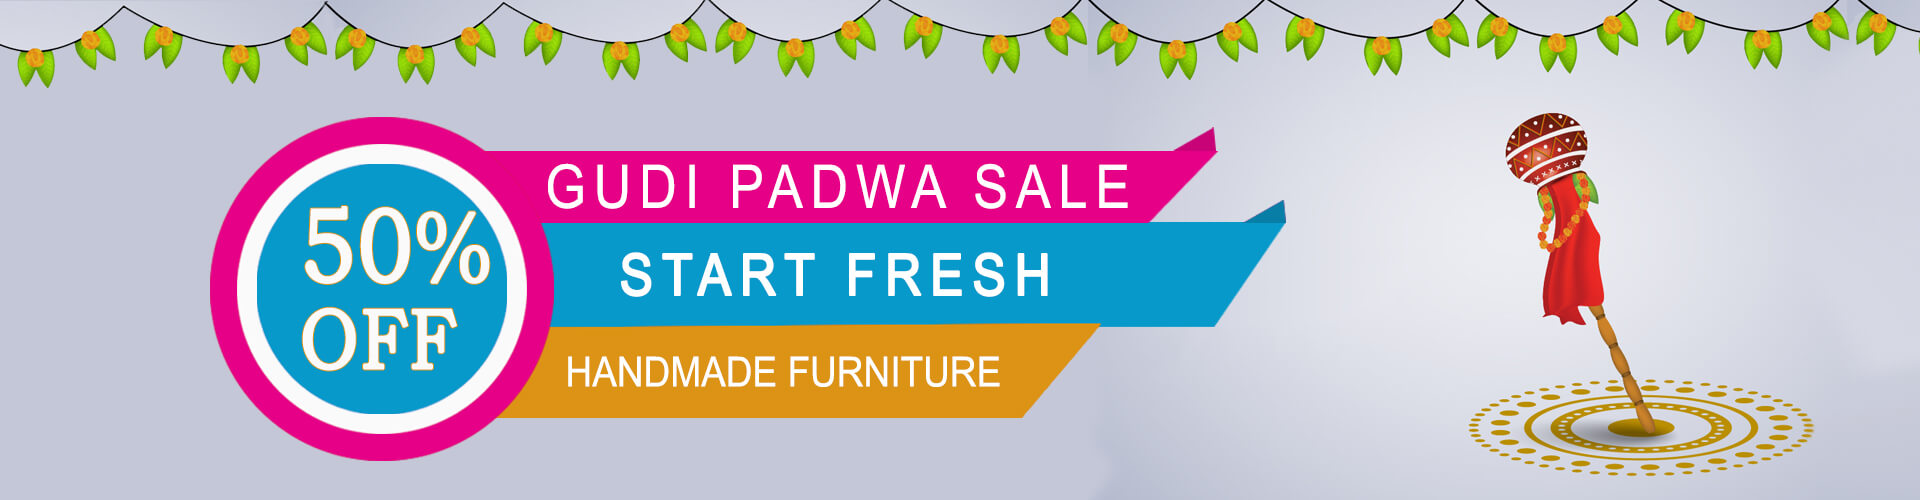 Online Furniture Shopping Offers